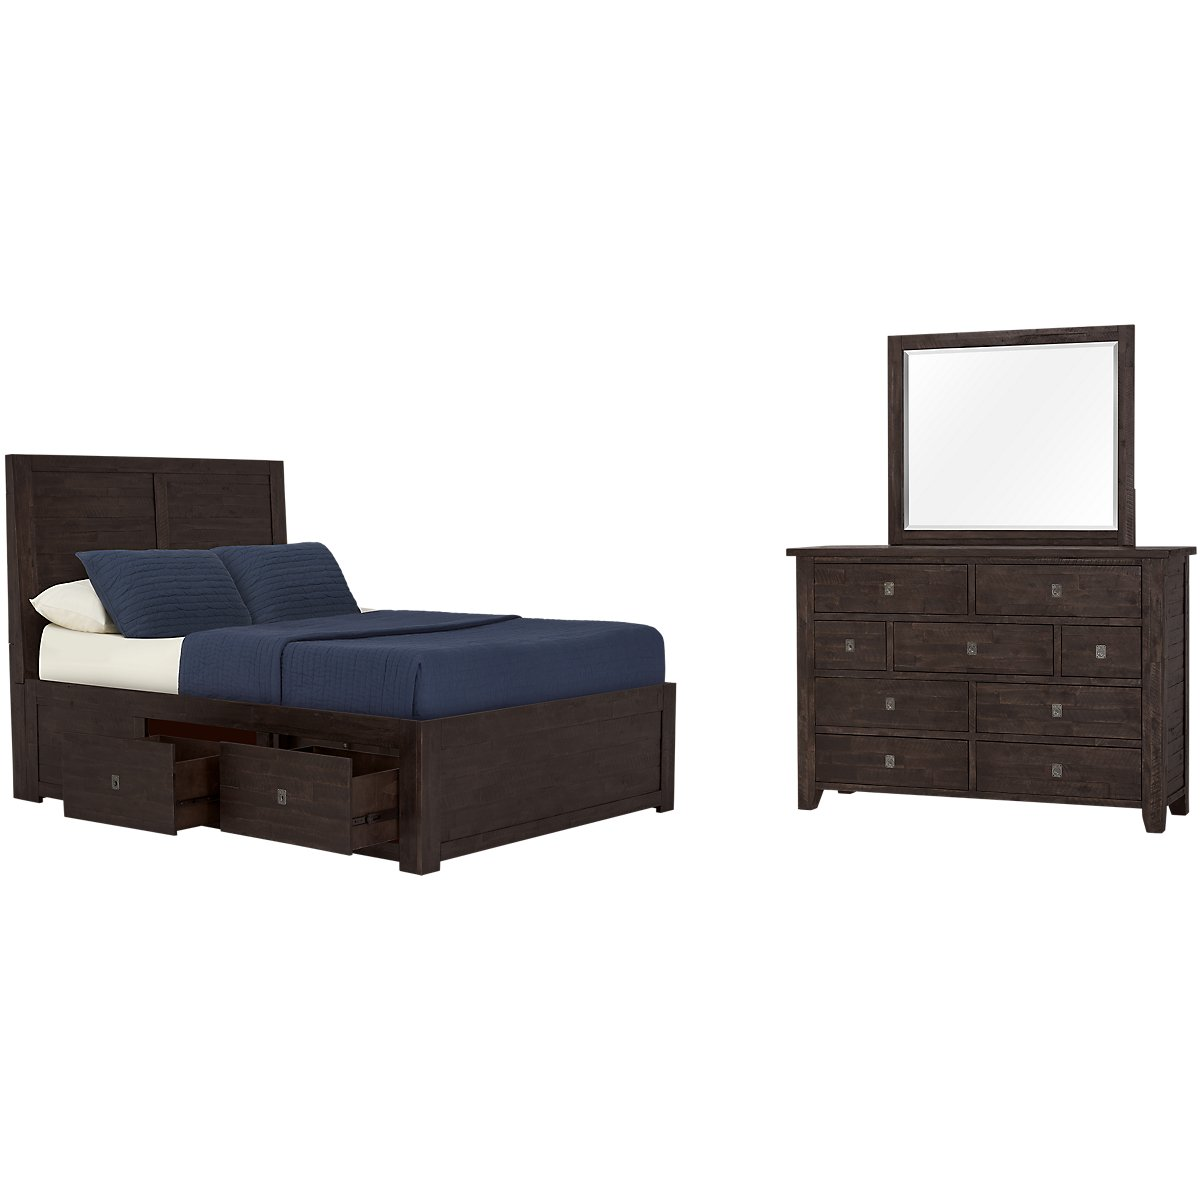 Kona Grove Dark Tone Platform Storage Bedroom